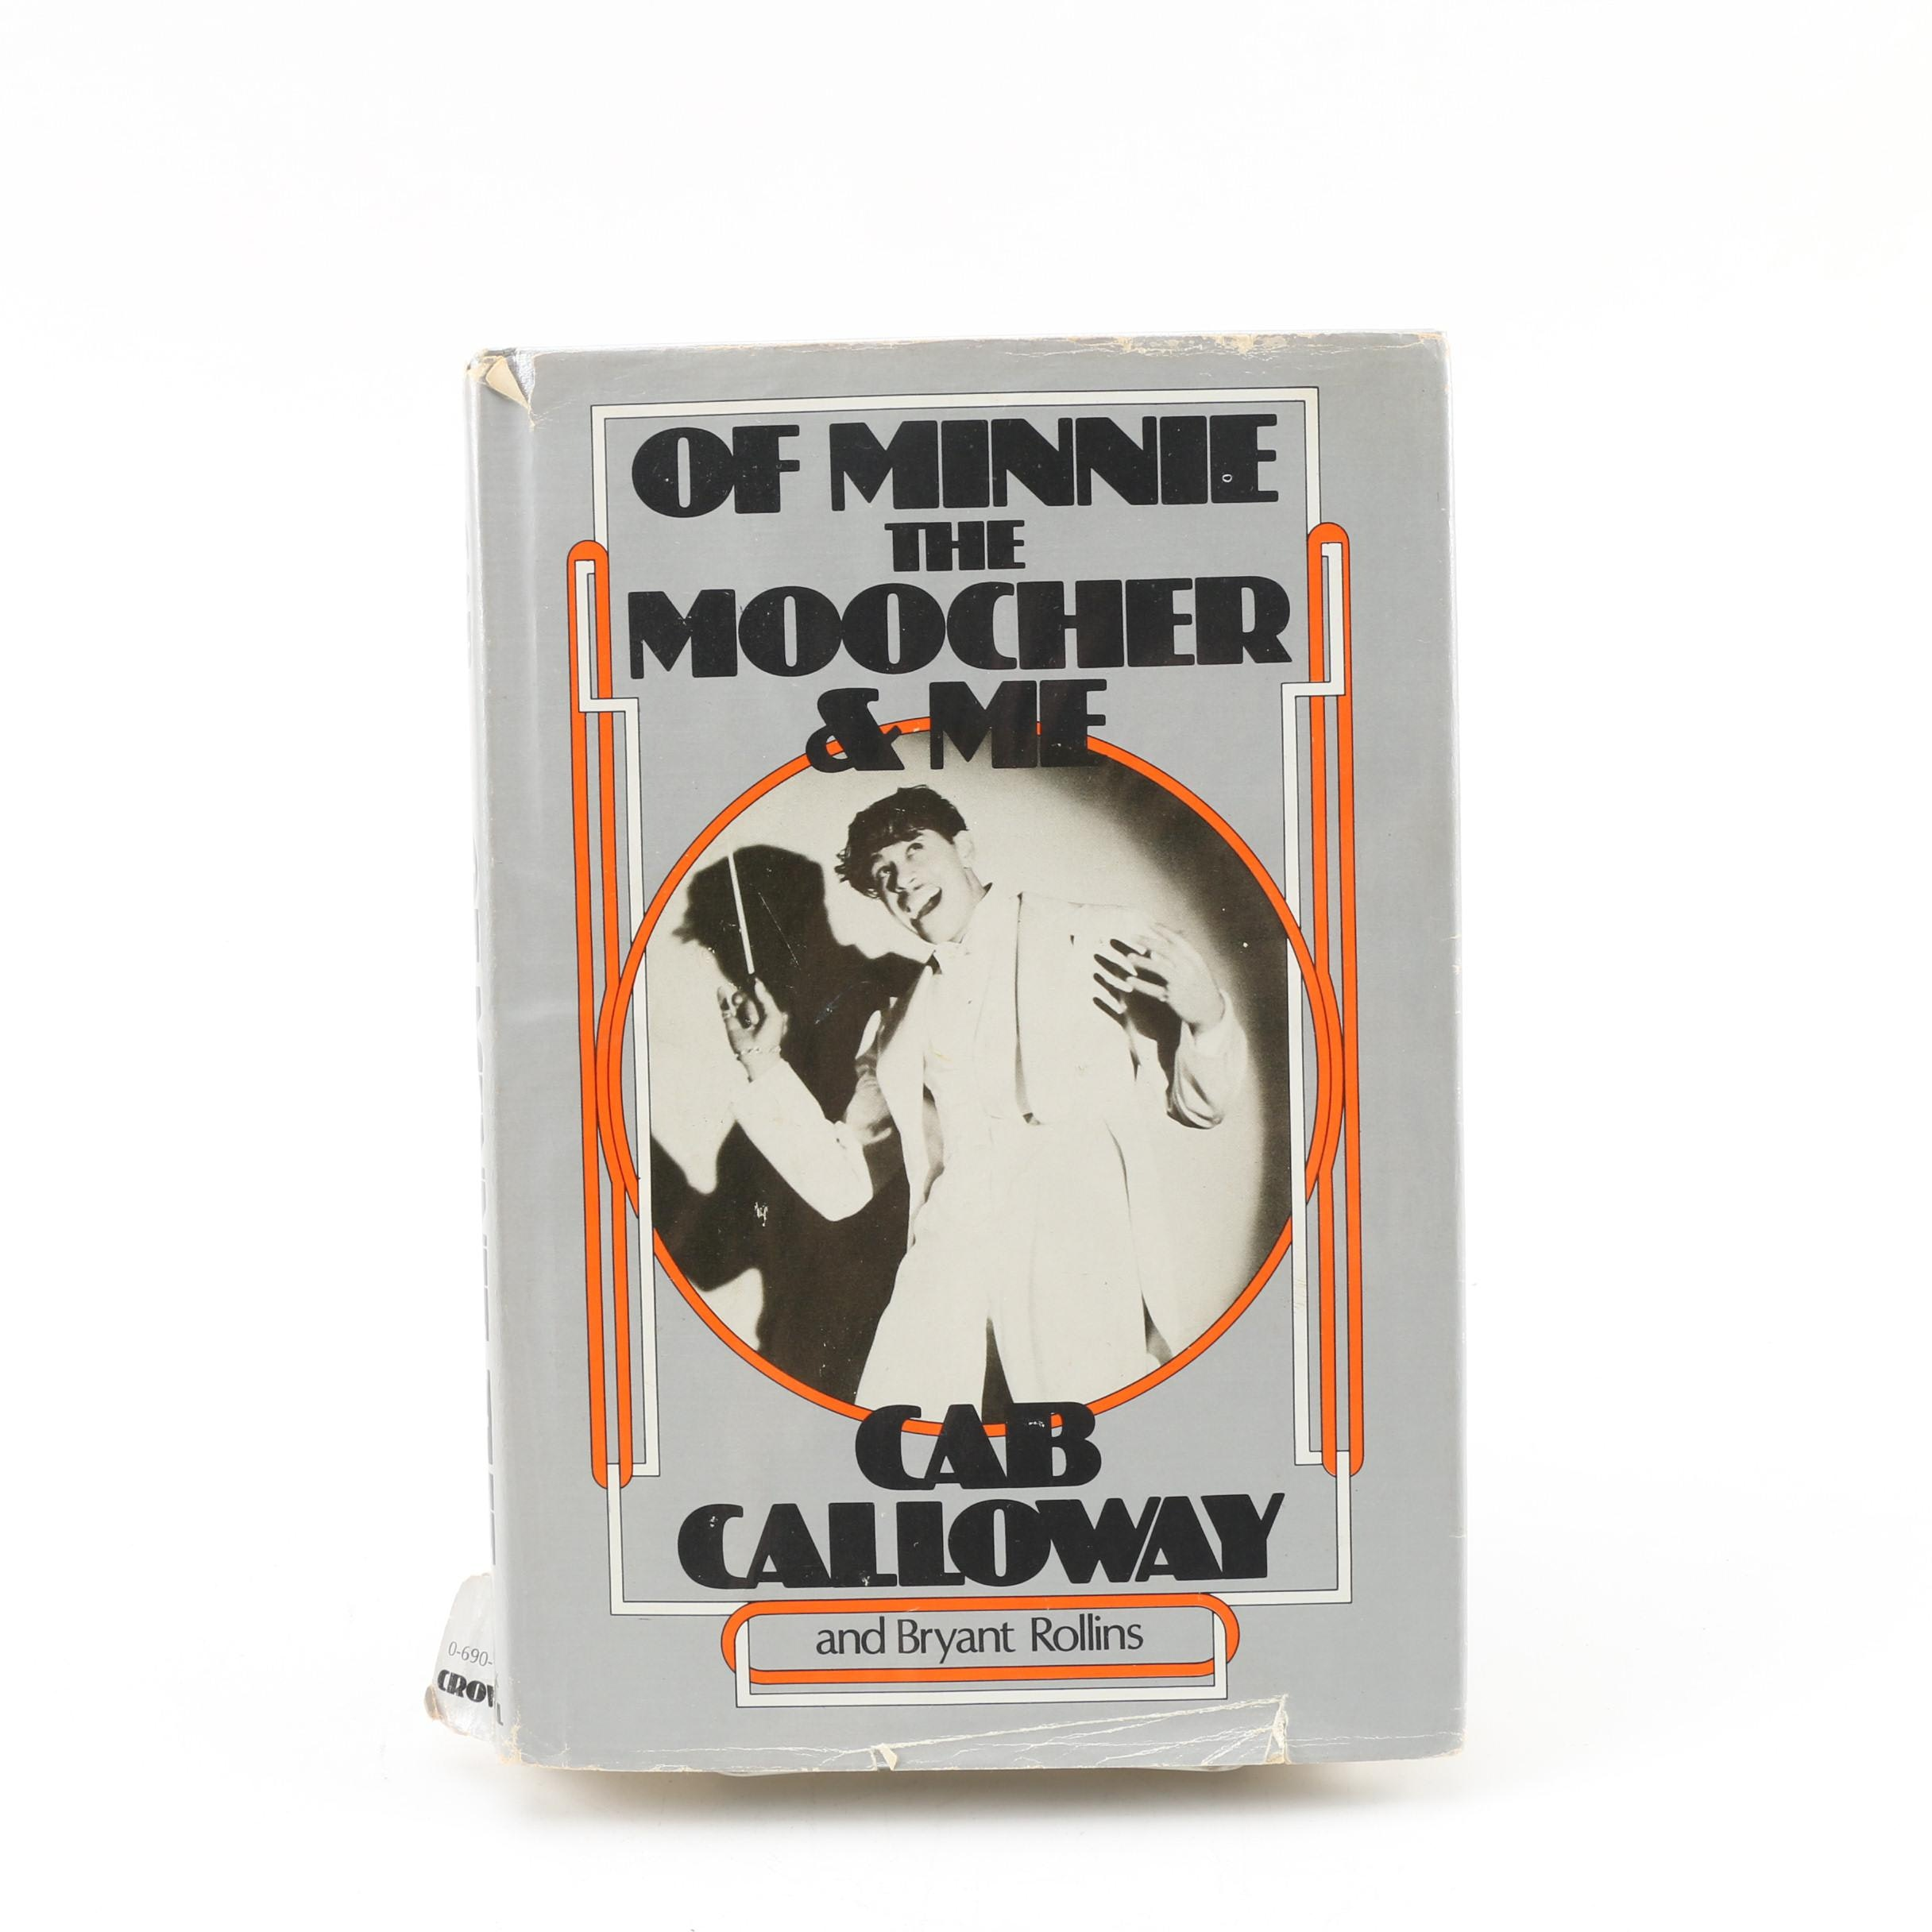 "1976 Signed Second Printing ""Of Minnie the Moocher"" by Cab Calloway"